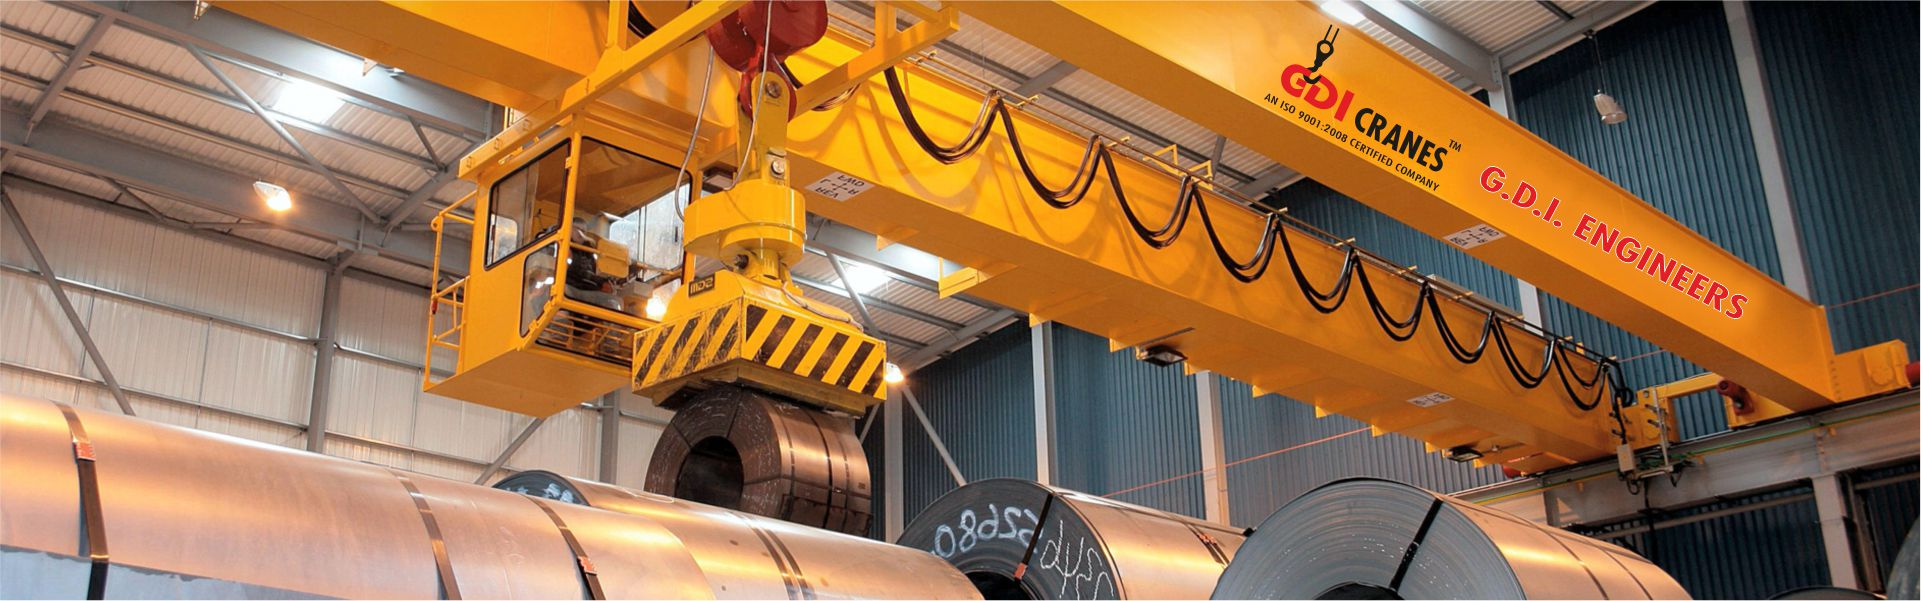 EOT Cranes Manufacturers | Over Head Cranes/EOT Cranes in